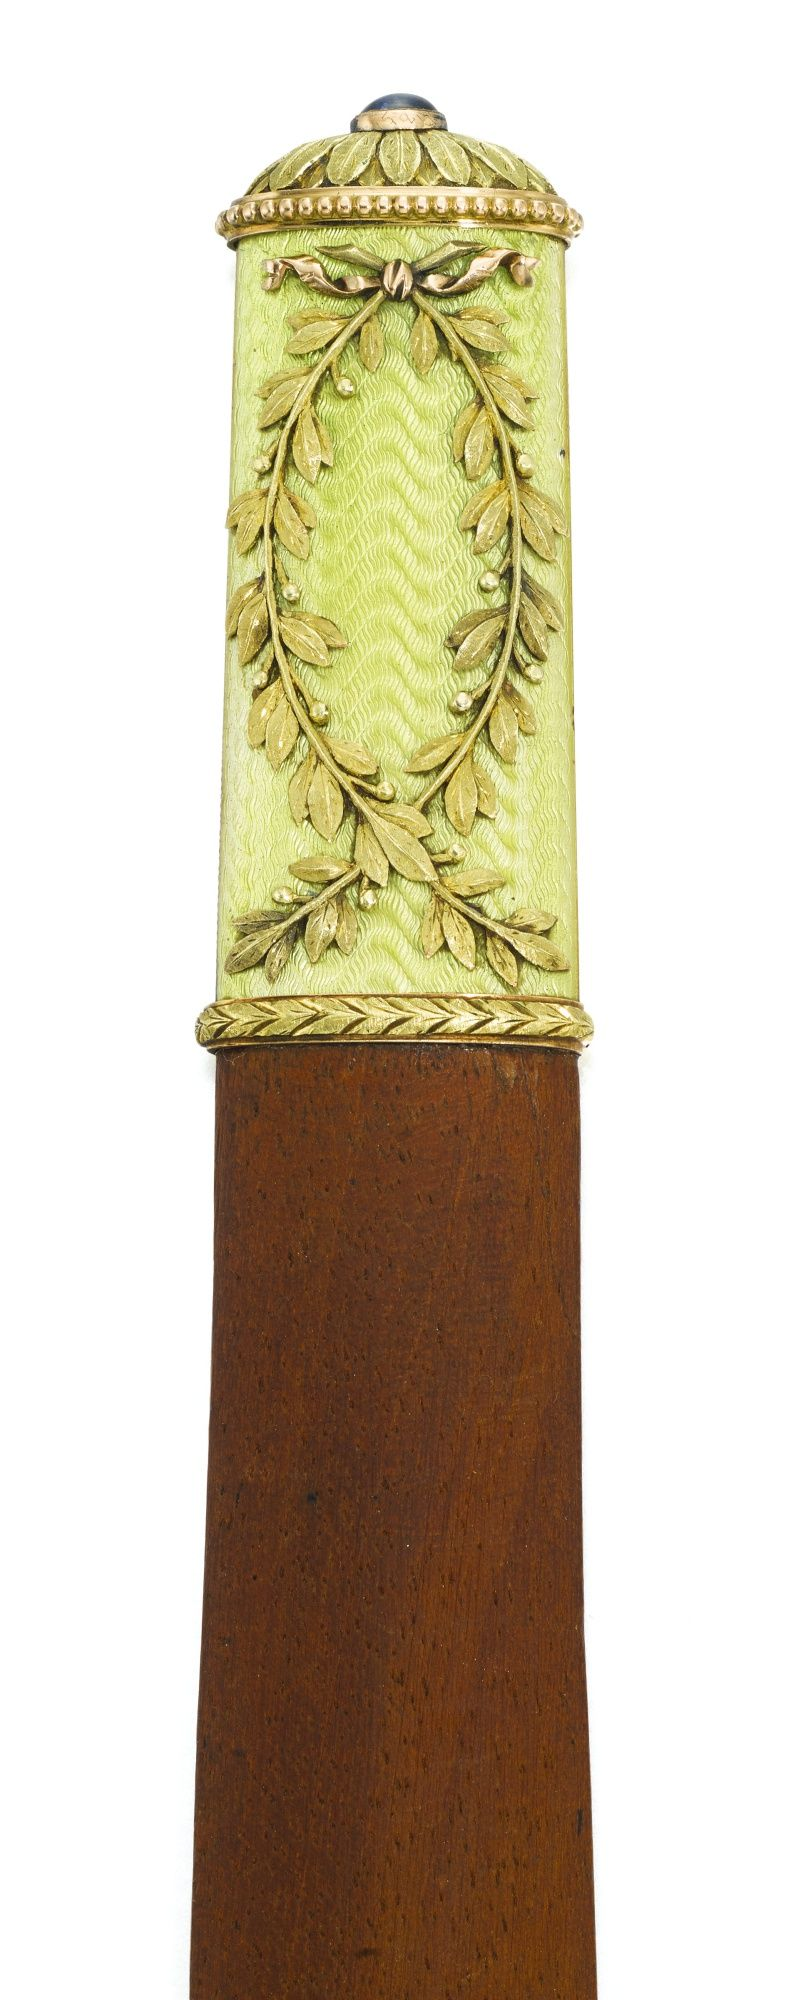 A Fabergé gold-mounted enamel and wood paper knife, workmaster Feodor Afanassiev, St Petersburg, 1904-1908 the handle of translucent apple green enamel over wavy engine-turning and applied with ribbon-tied laurel, the rosette terminal set with a cabochon sapphire, palisander blade, struck with workmaster's initials, 56 and 88 standards, scratched inventory number 15862